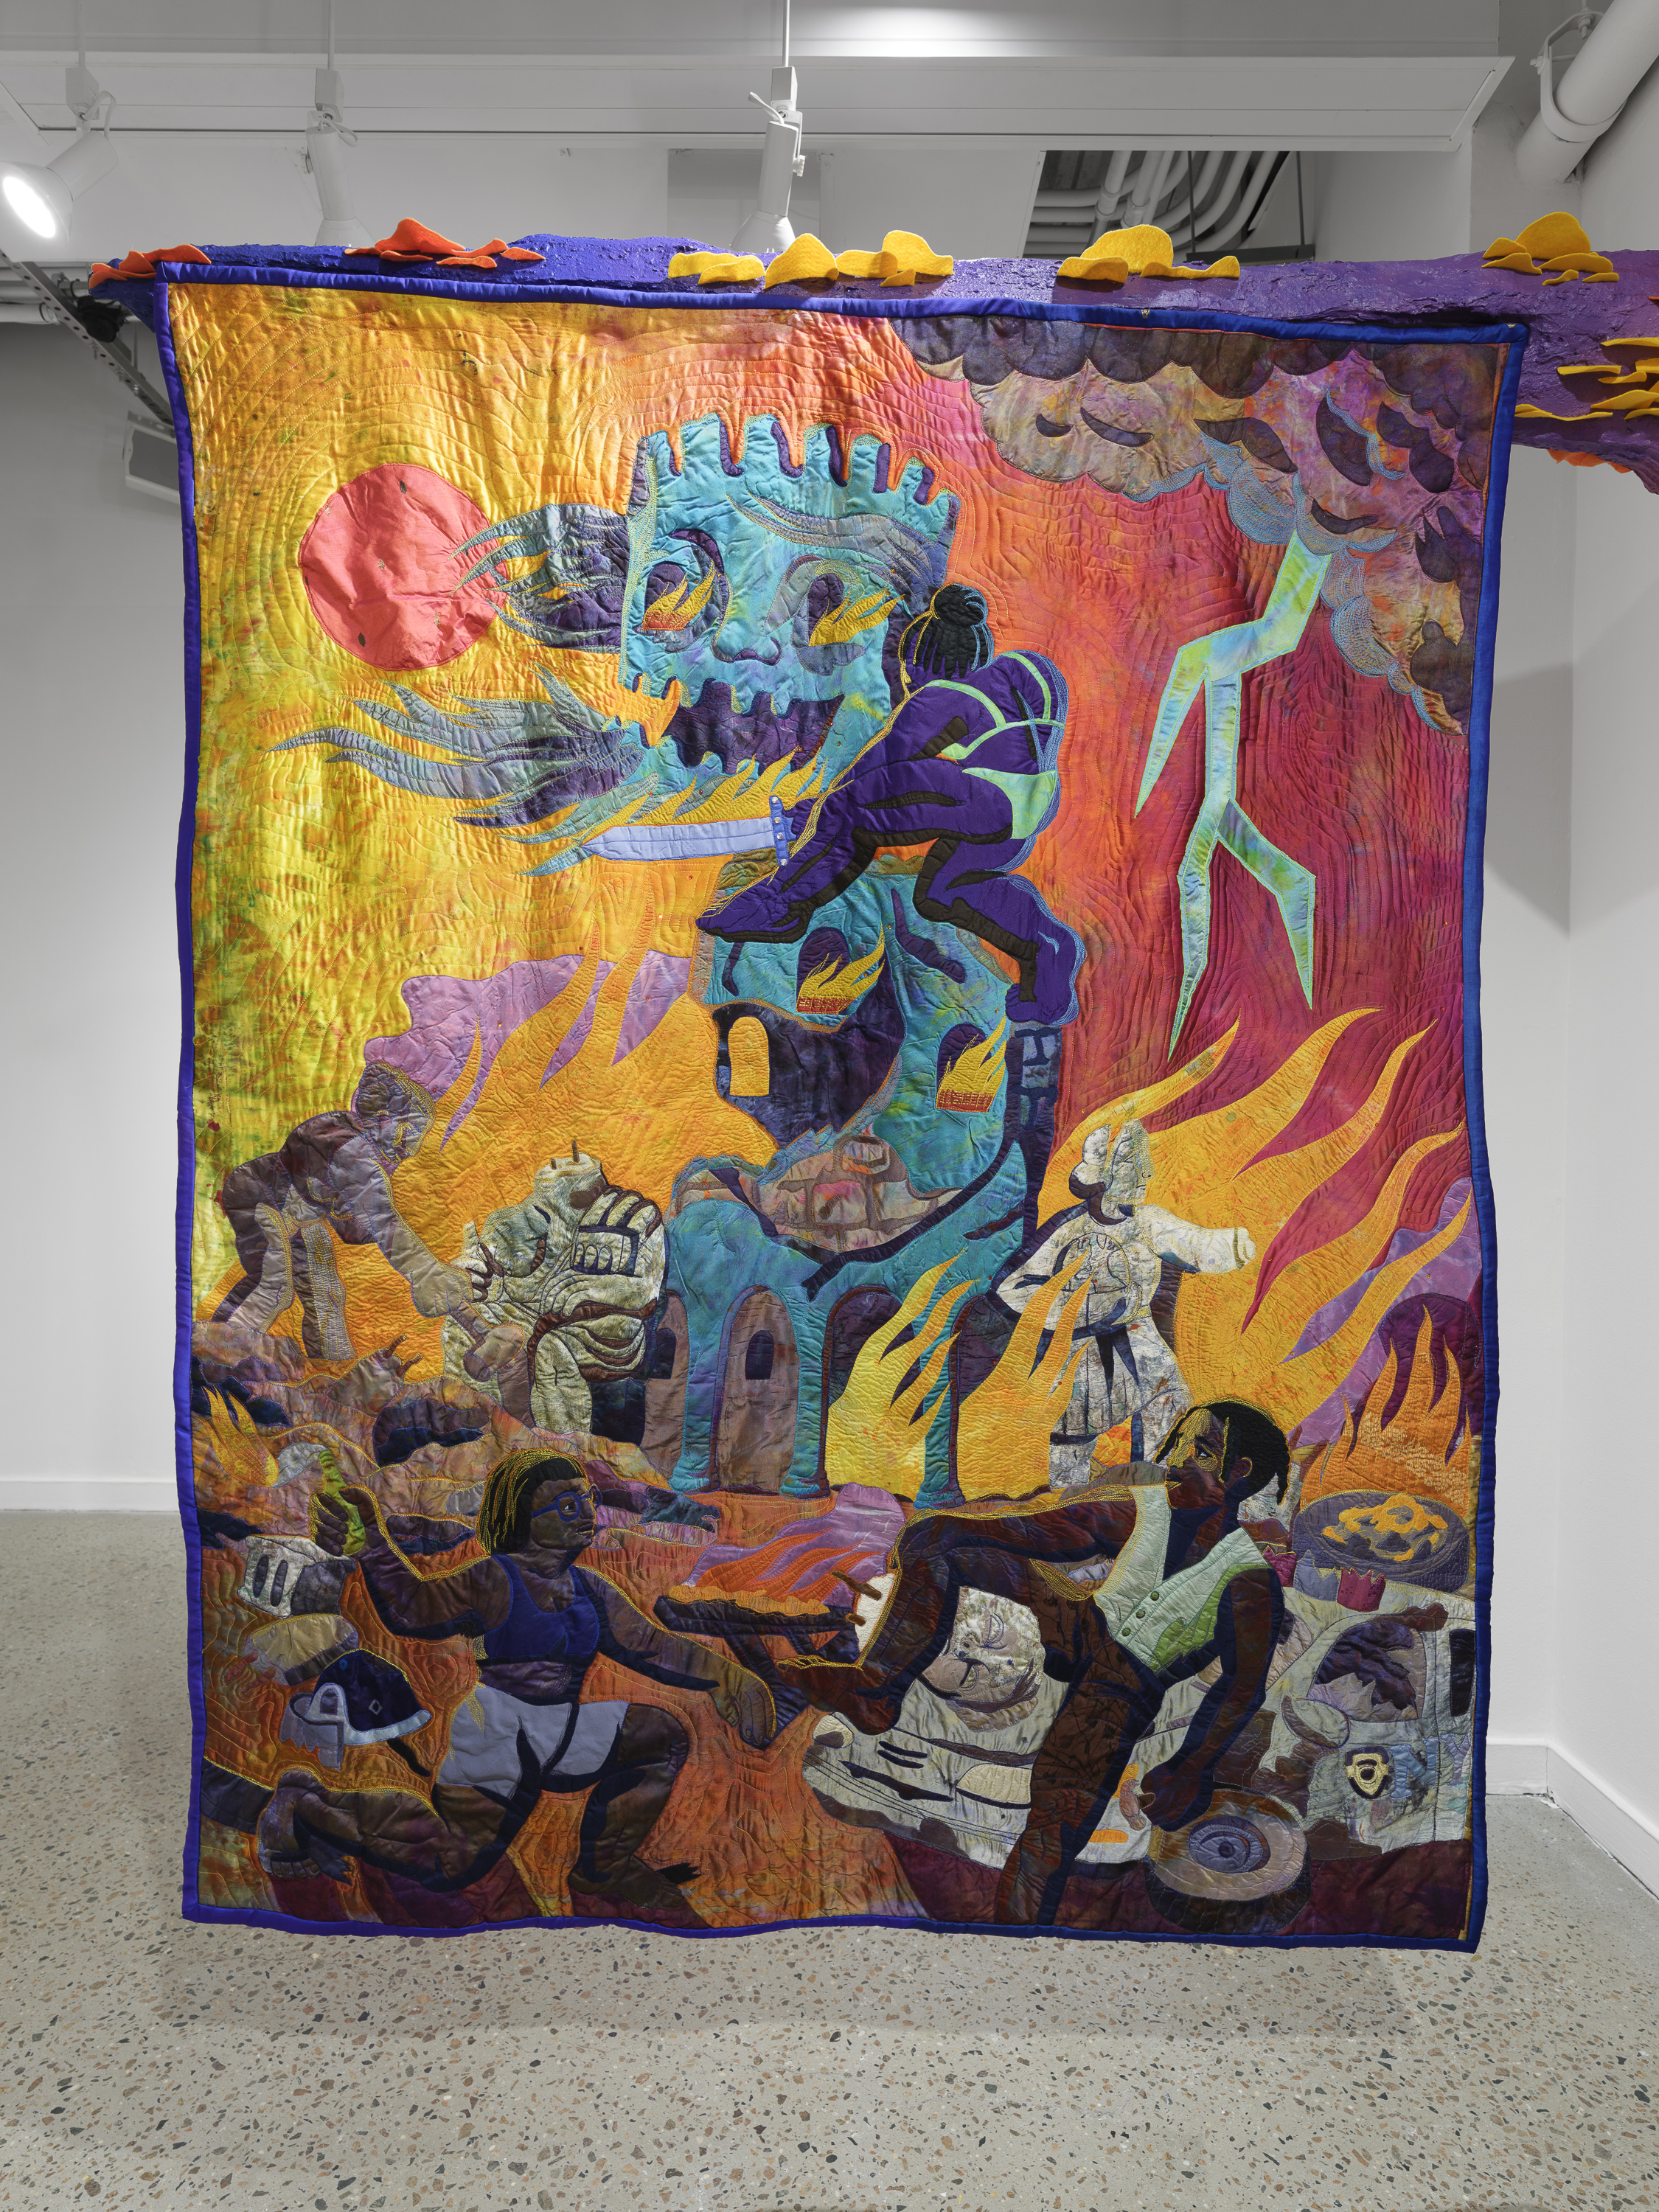 Colorful artwork of a woman slaying a skeleton surrounded by fire and other people.